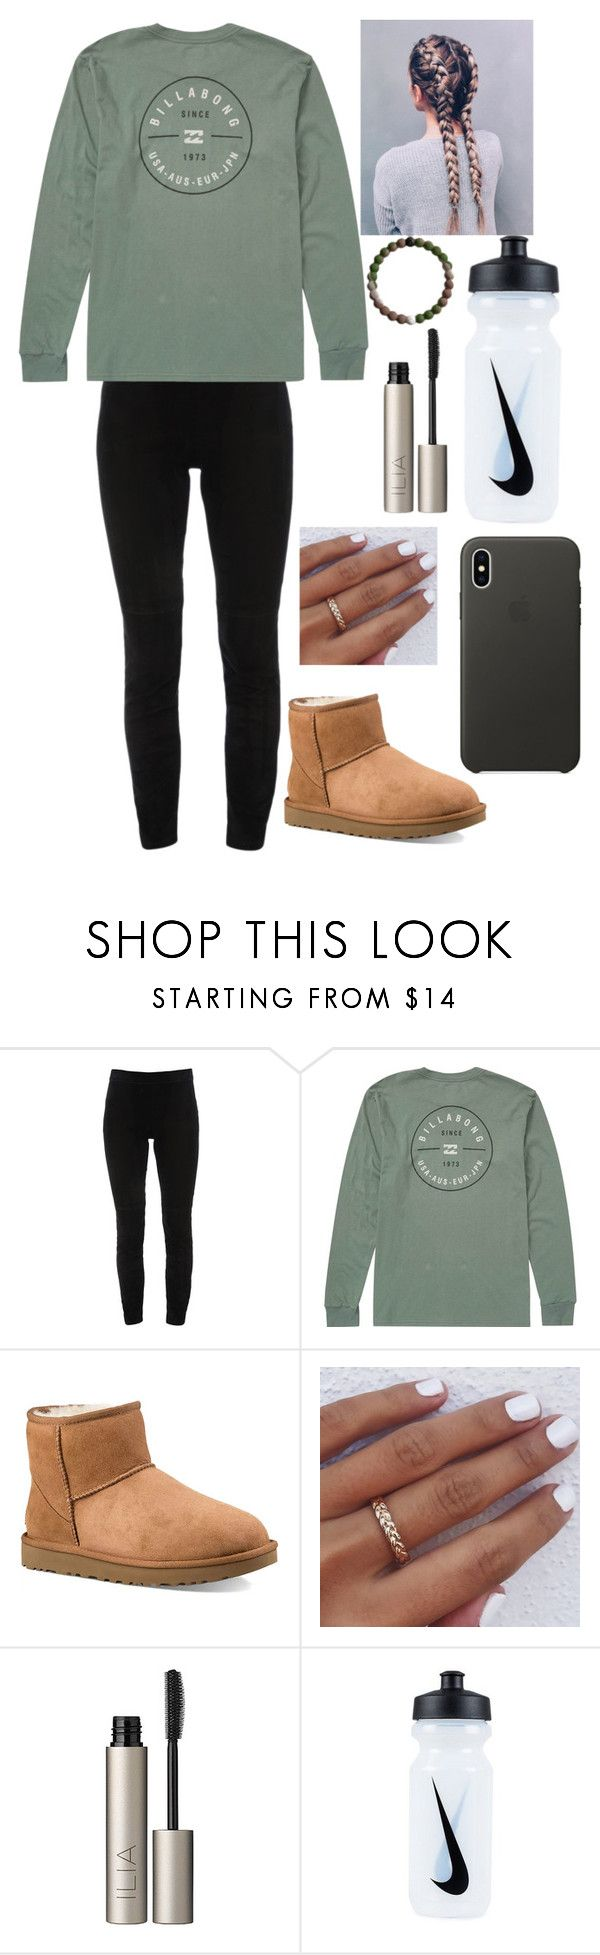 Chill school outfit  College girl outfits, Outfits for teens